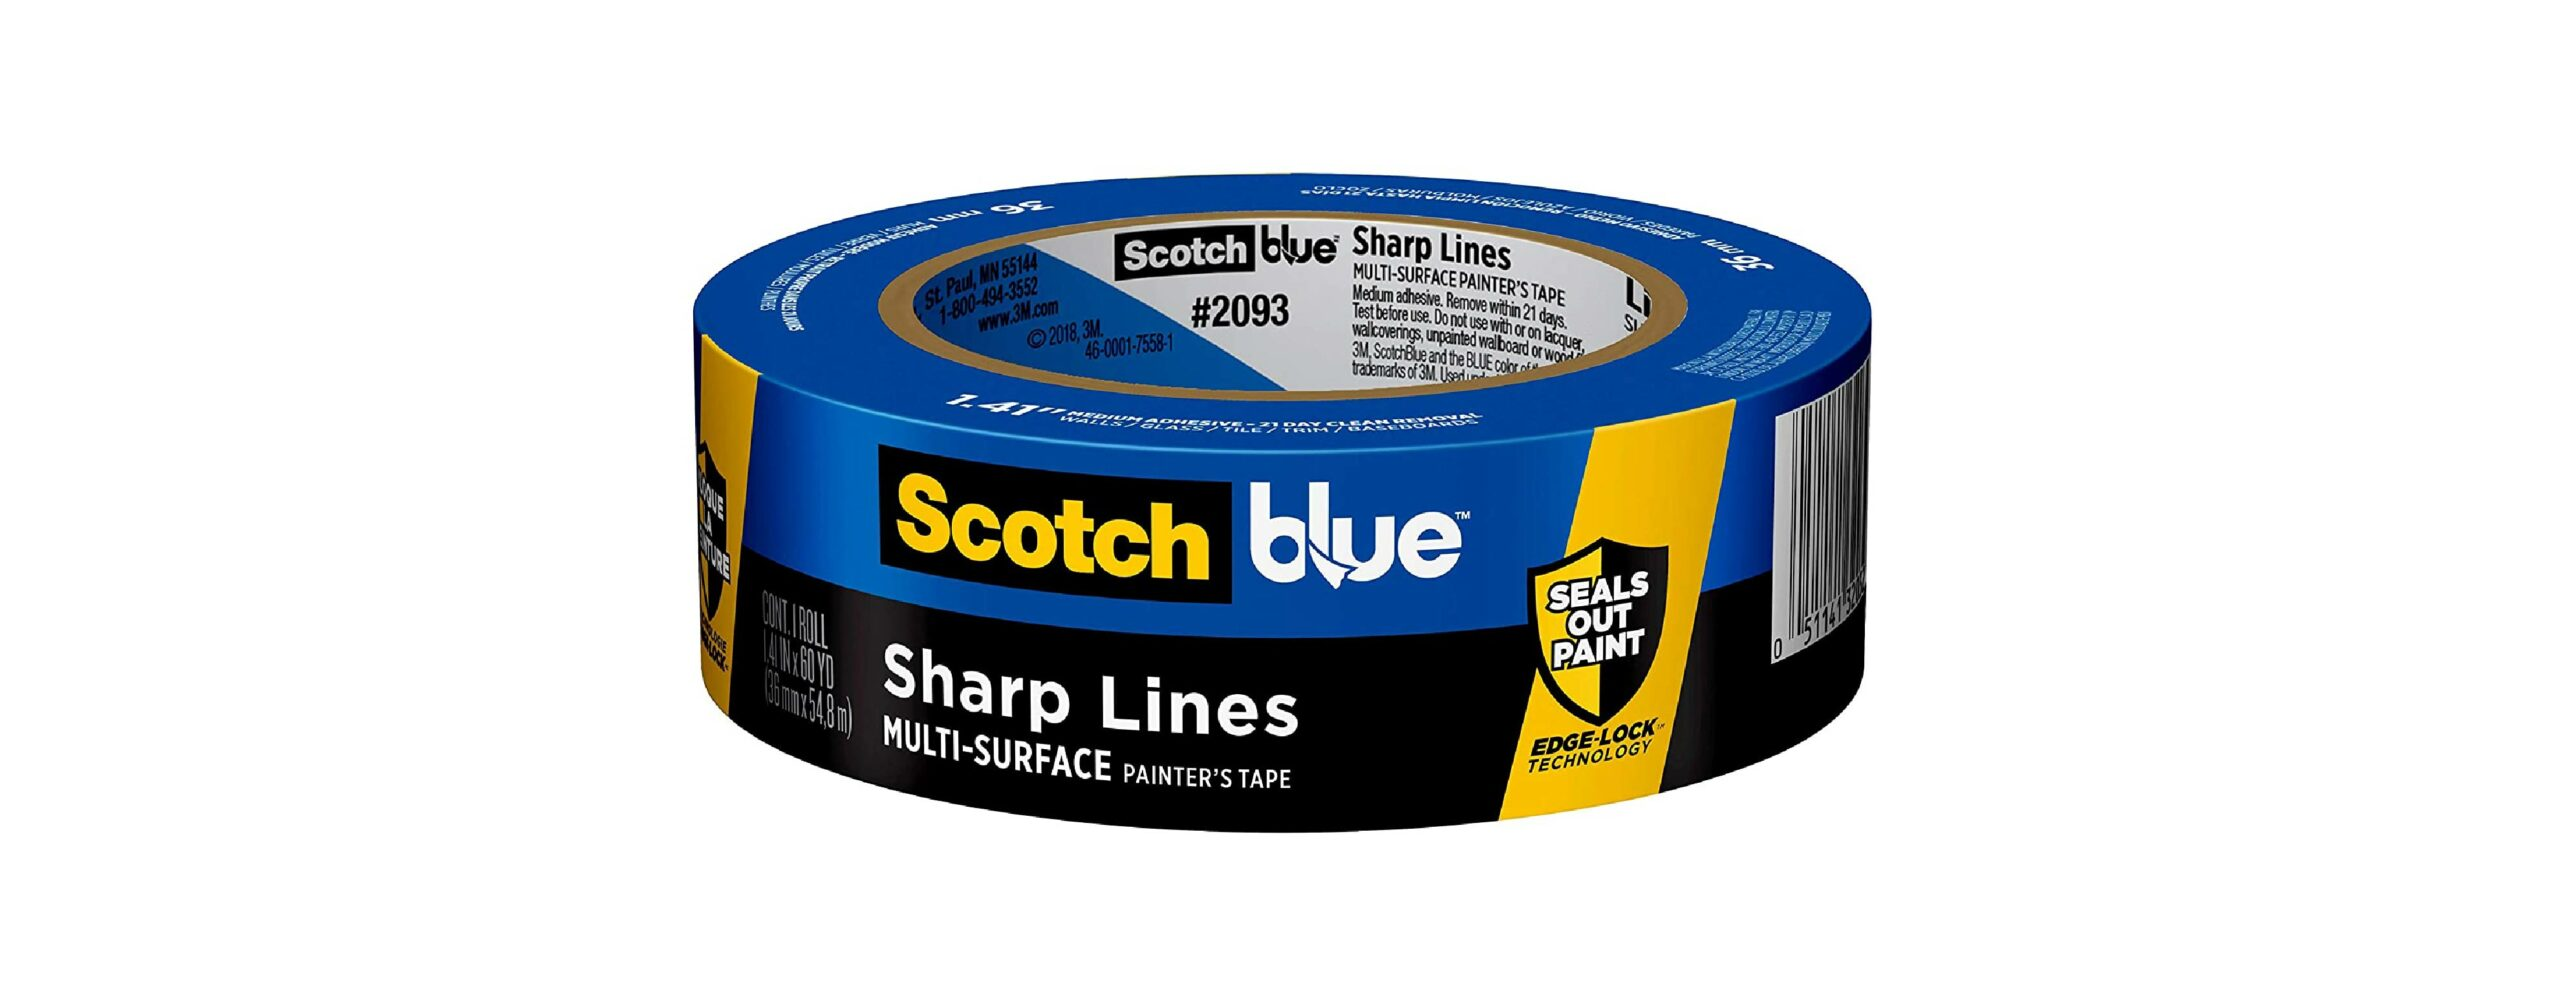 Scotch Thick Painter's Tape for Baseboards